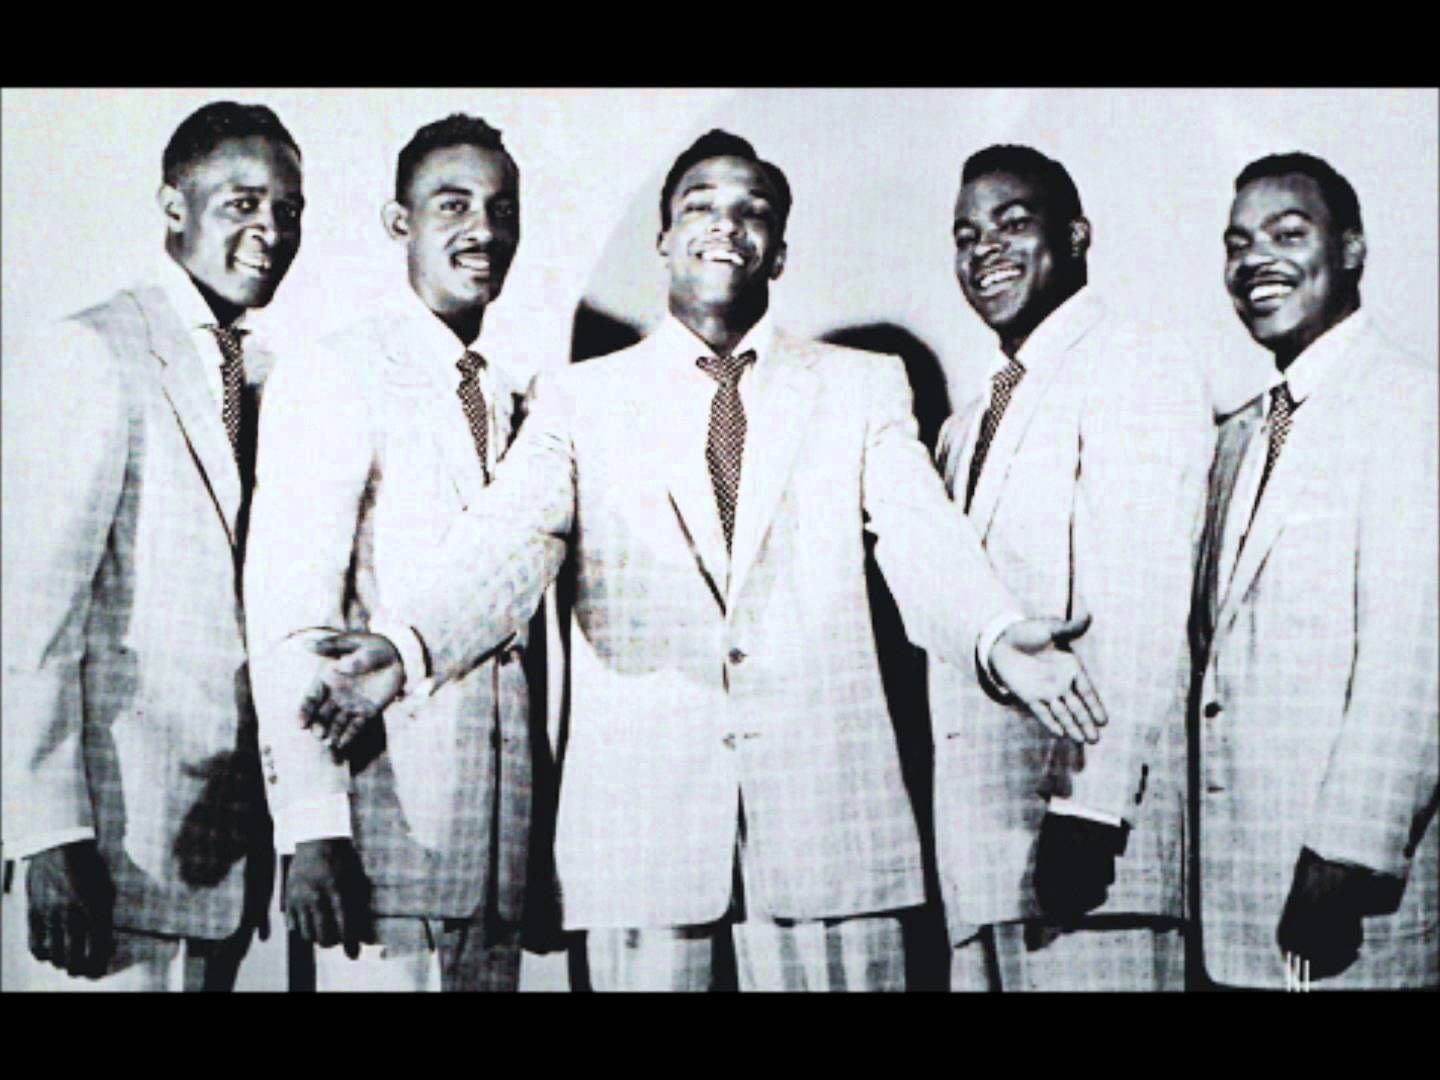 the drifters in 1954 singing white christmas - White Christmas By The Drifters